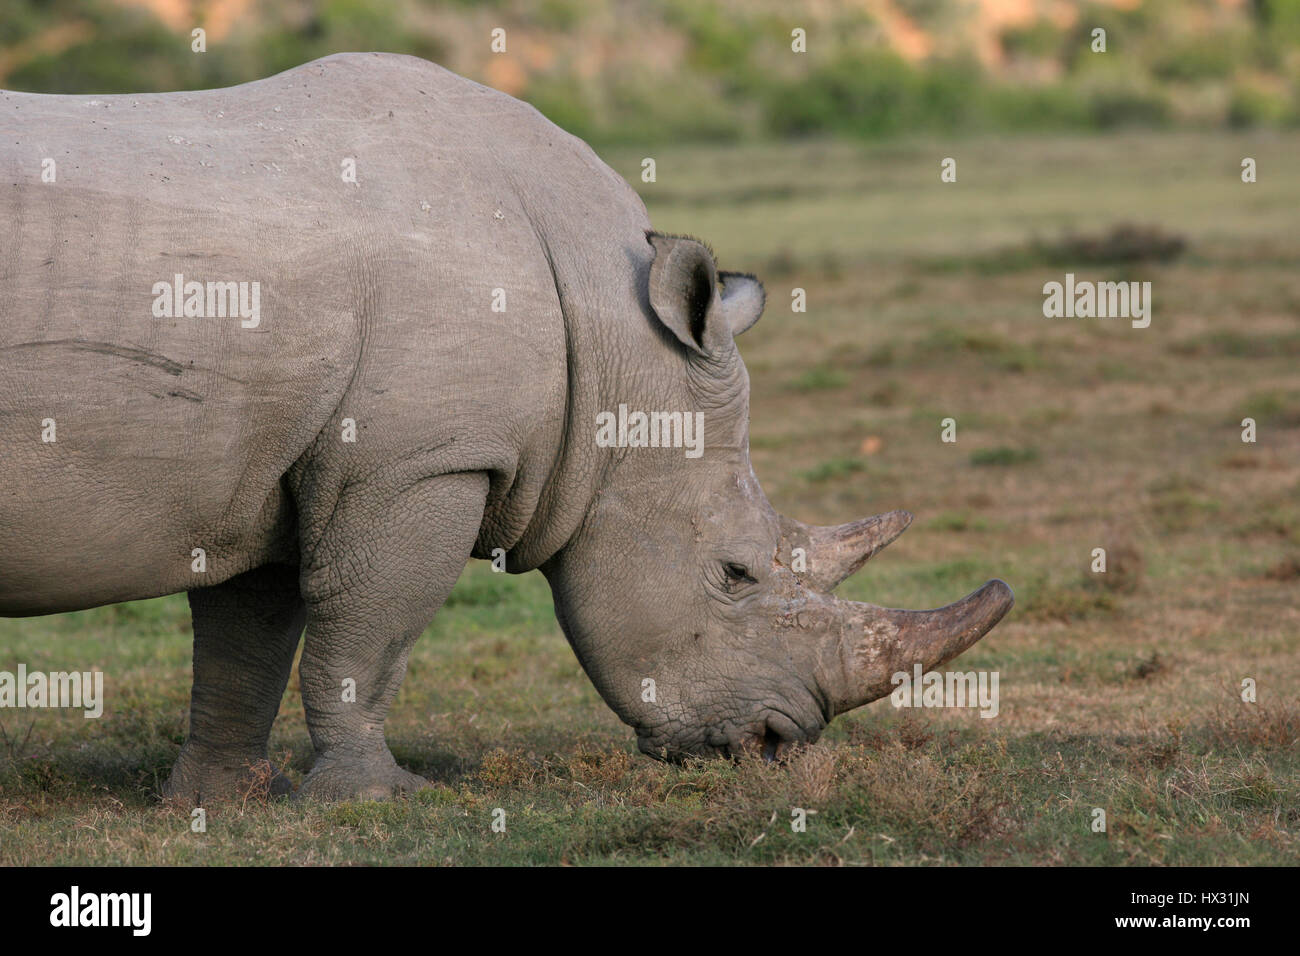 A white rhino eats grass during a safari, in a private game reserve in South Africa March 18, 2017. © John - Stock Image